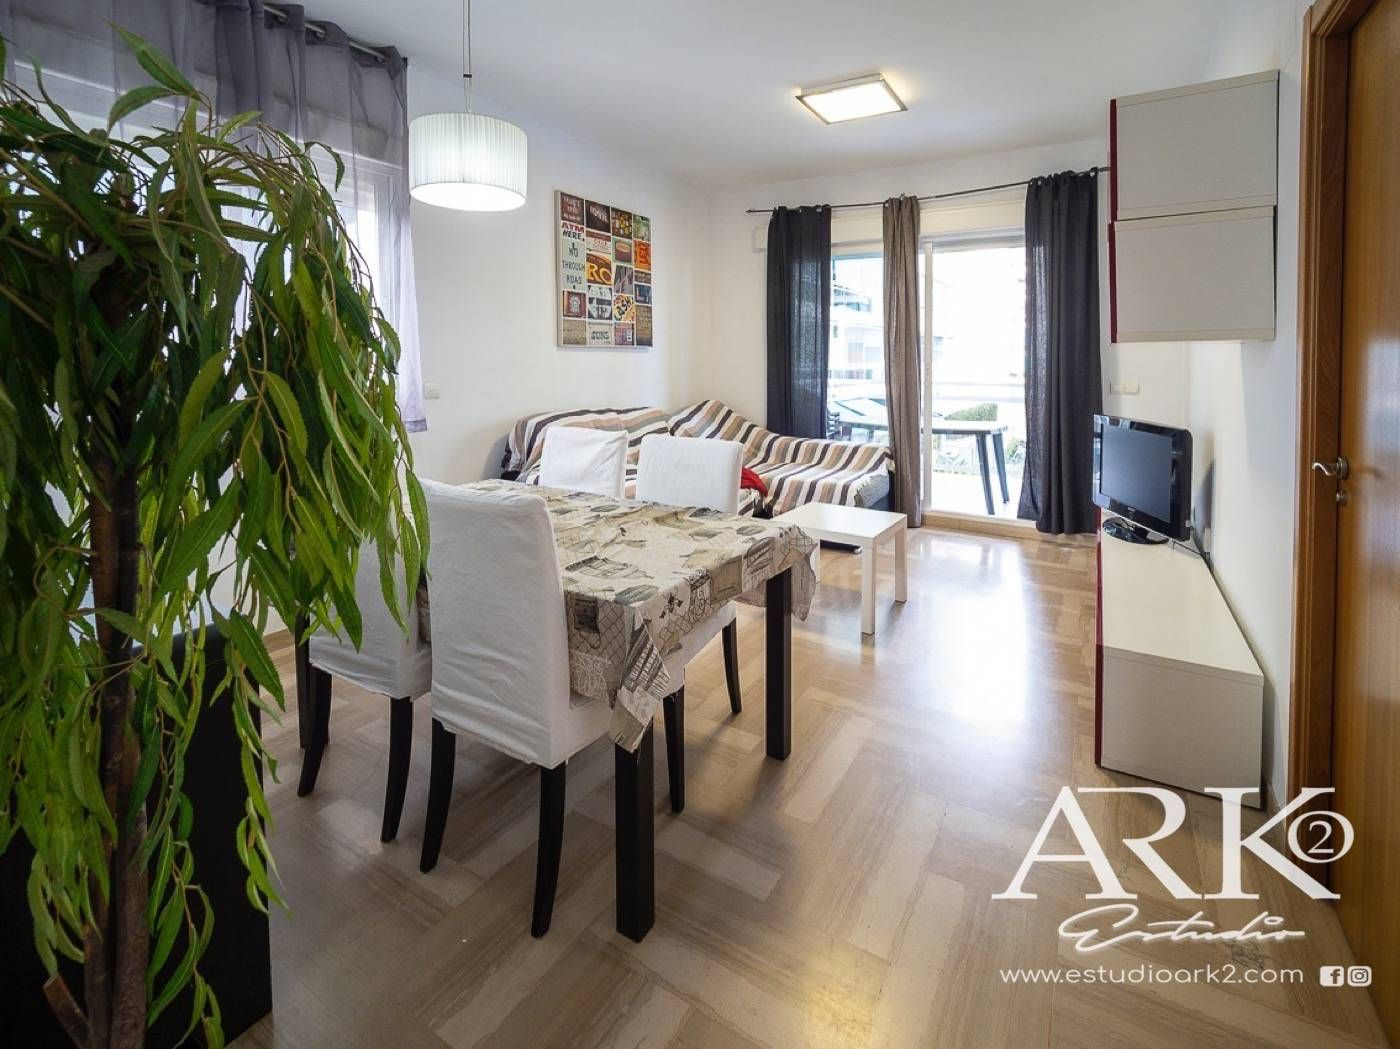 Appartement  Avenida universitat (de la). Apartameto en playa de gandia